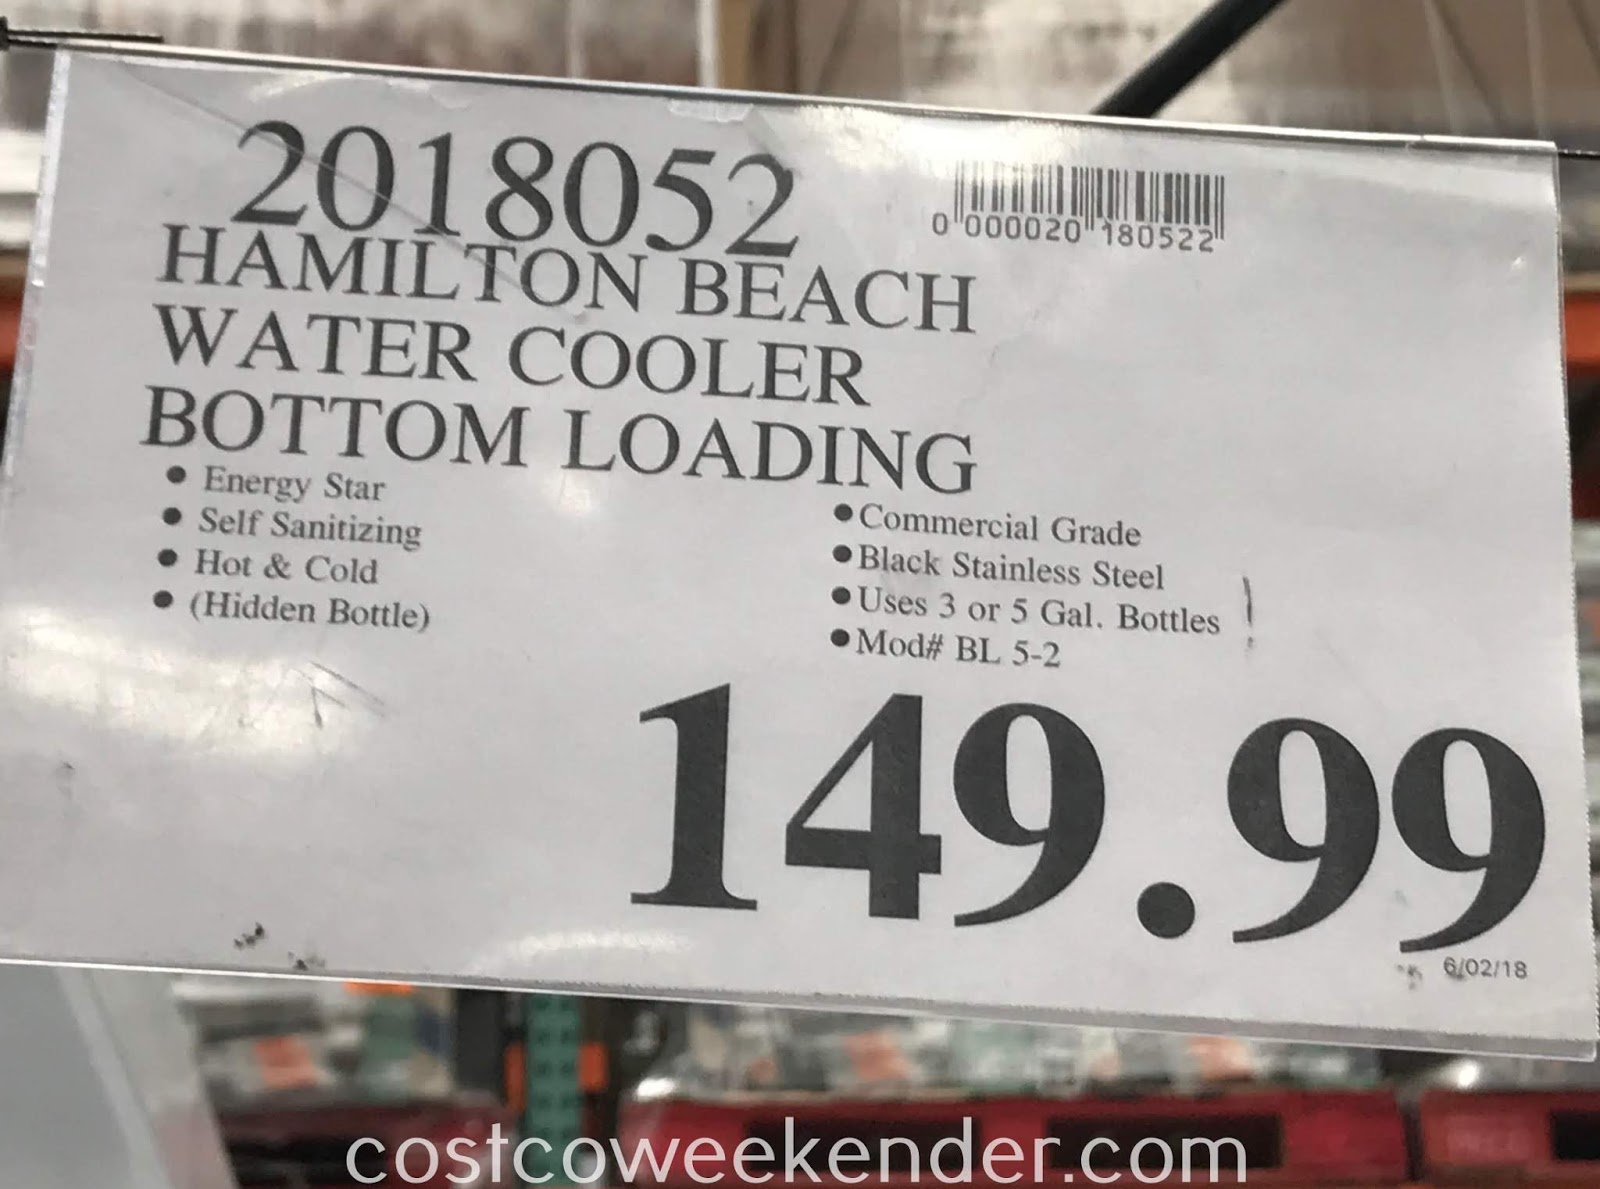 Deal for the Hamilton Beach Bottom Loading Water Cooler at Costco